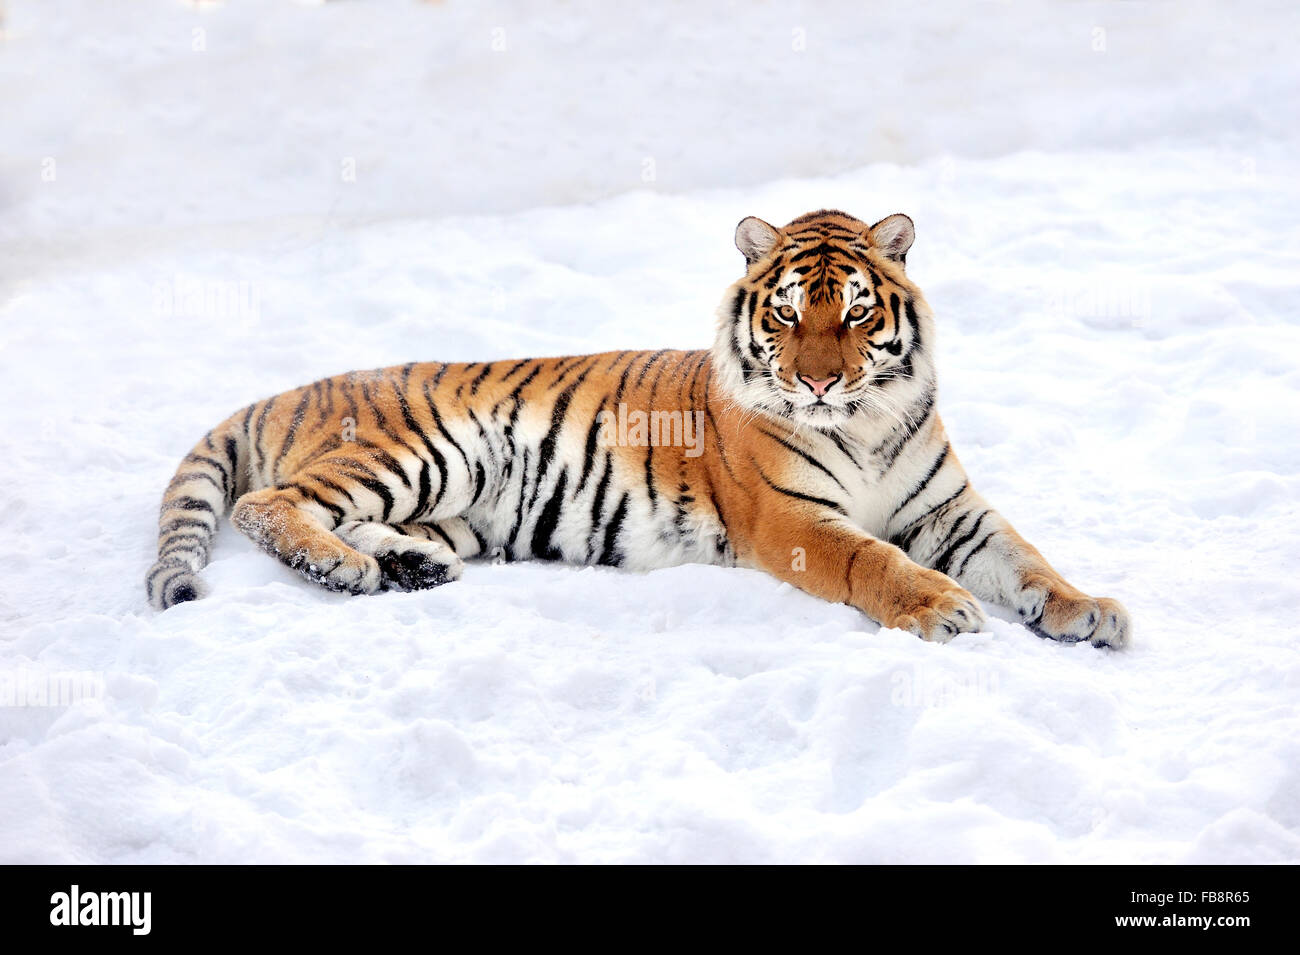 Beautiful wild siberian tiger on snow - Stock Image